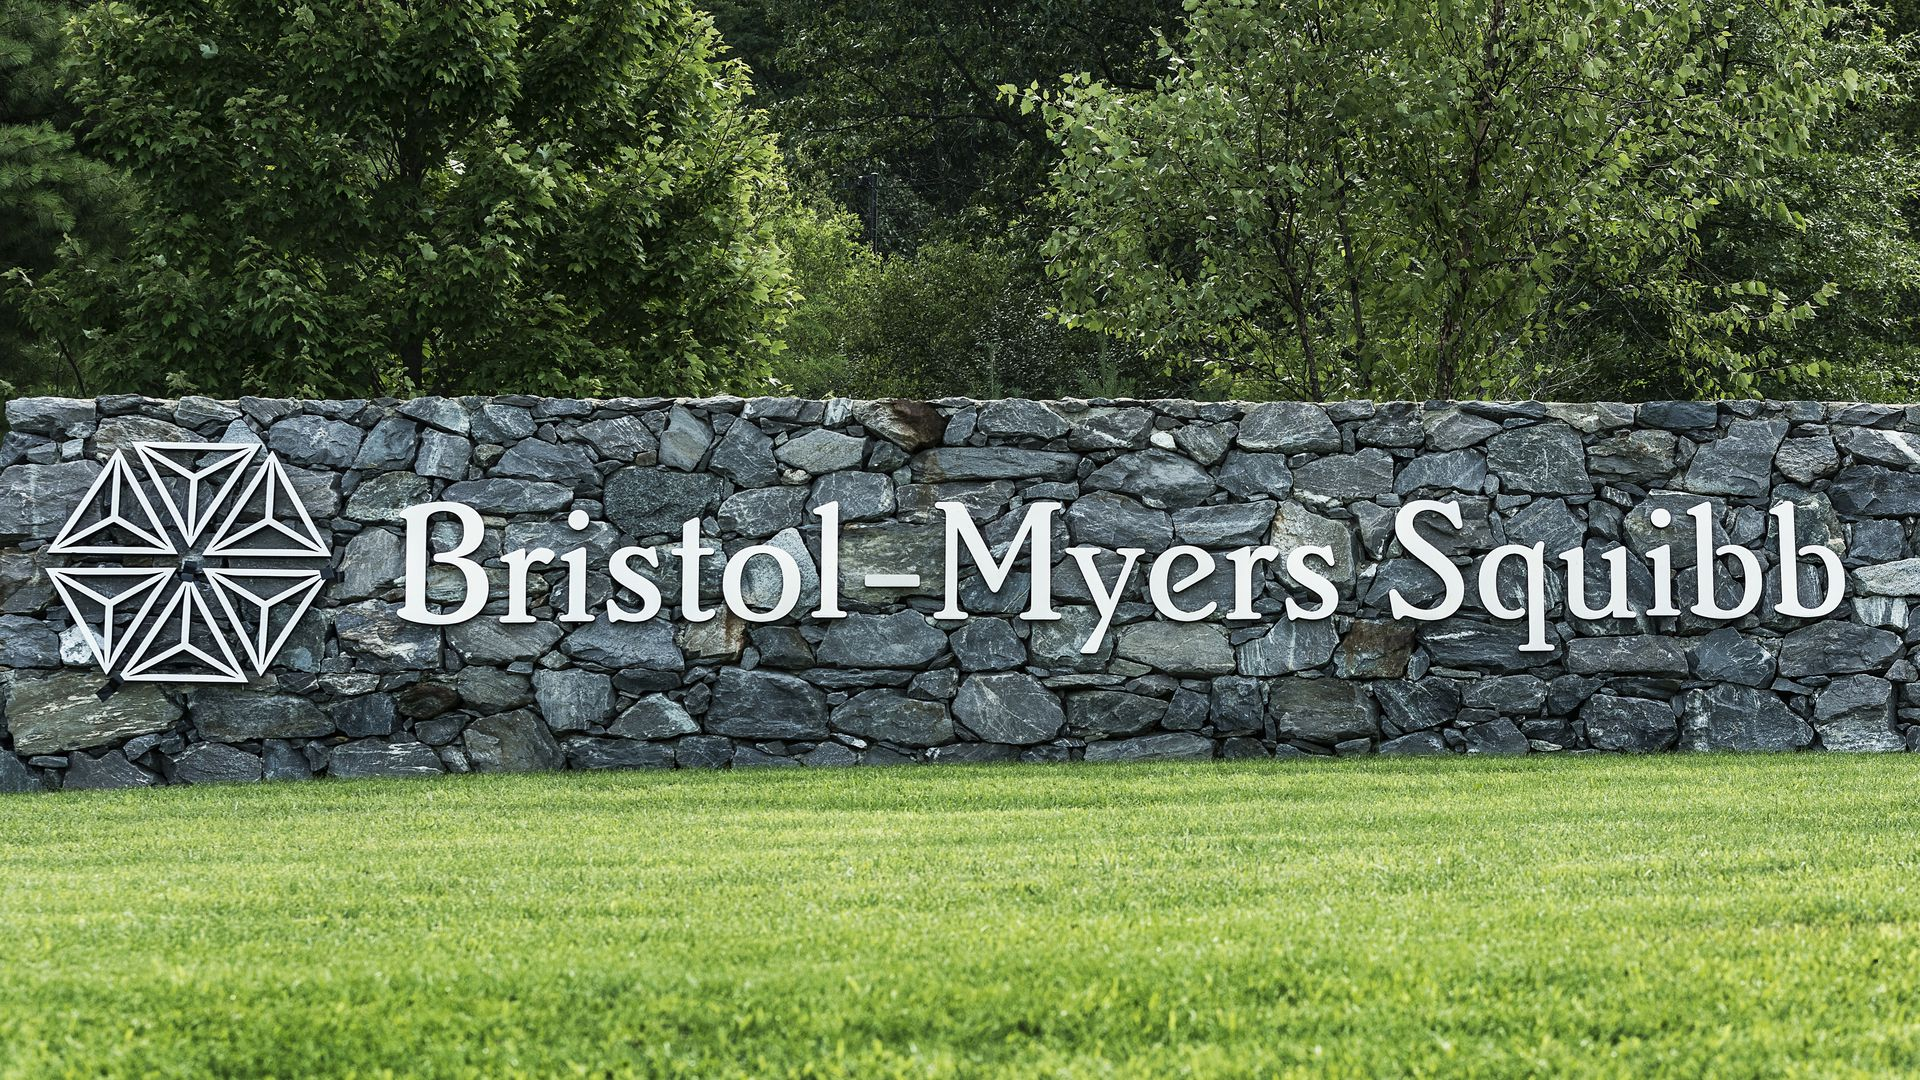 A sign with the Bristol-Myers Squibb logo